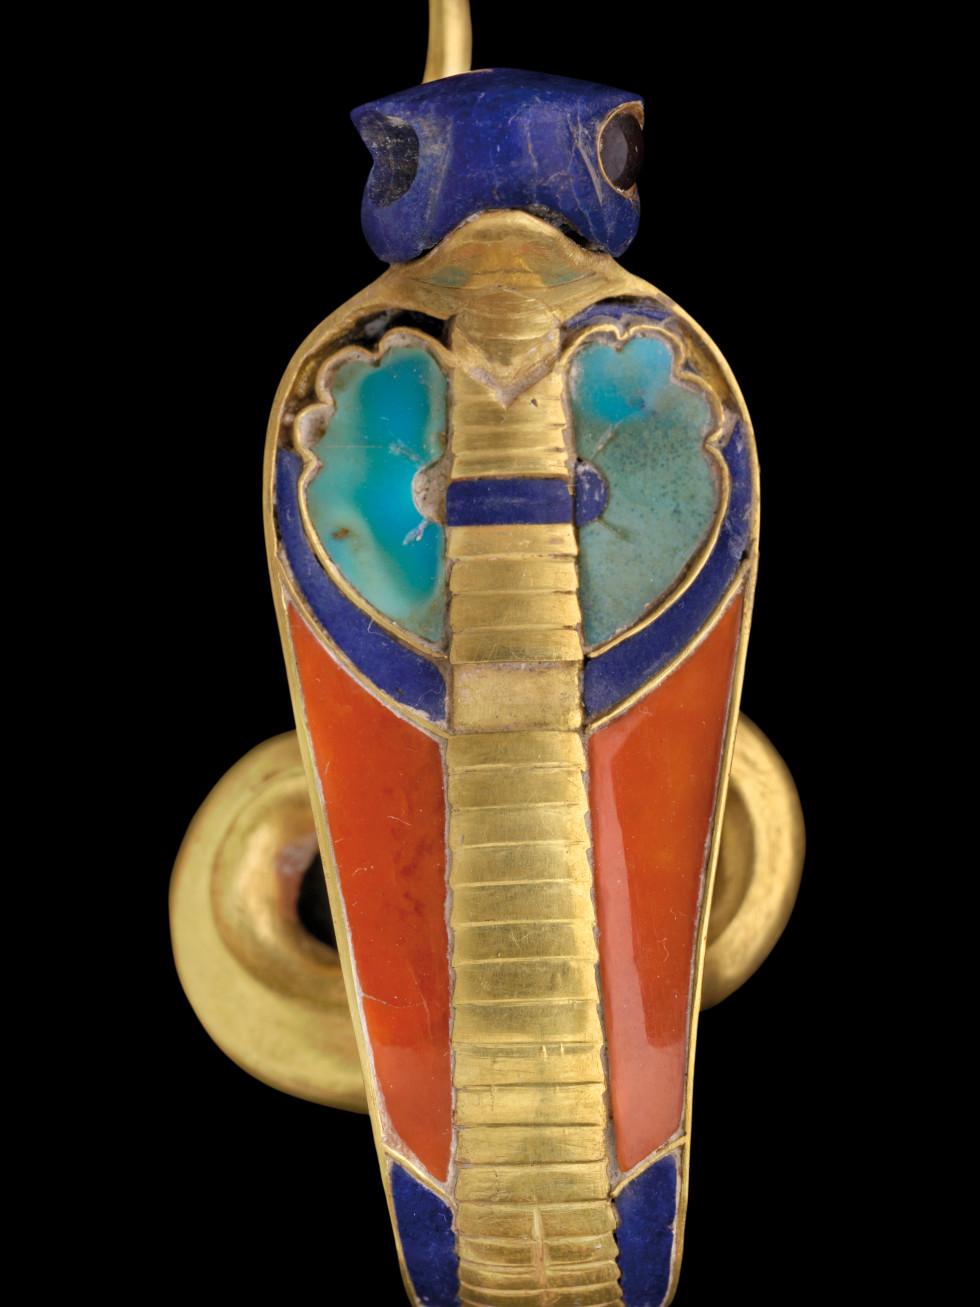 Ramses the Great and the Gold of the Pharaohs Houston Museum of Natural Science Gold Uraeus Inlaid with Semi-precious Stones from a Royal Crown of Senwosret II